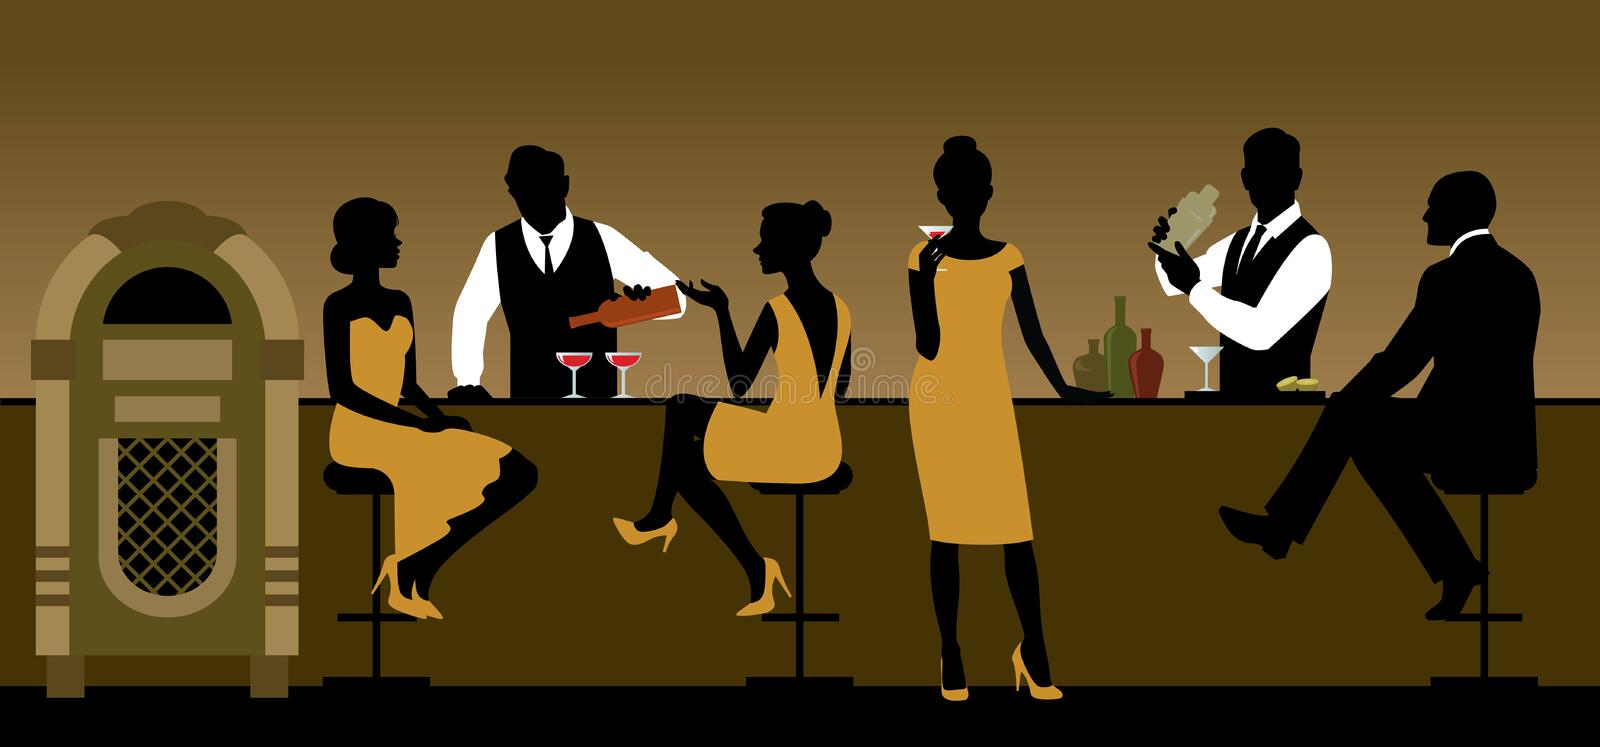 Silhouettes of a group of people drinking in a bar royalty free illustration